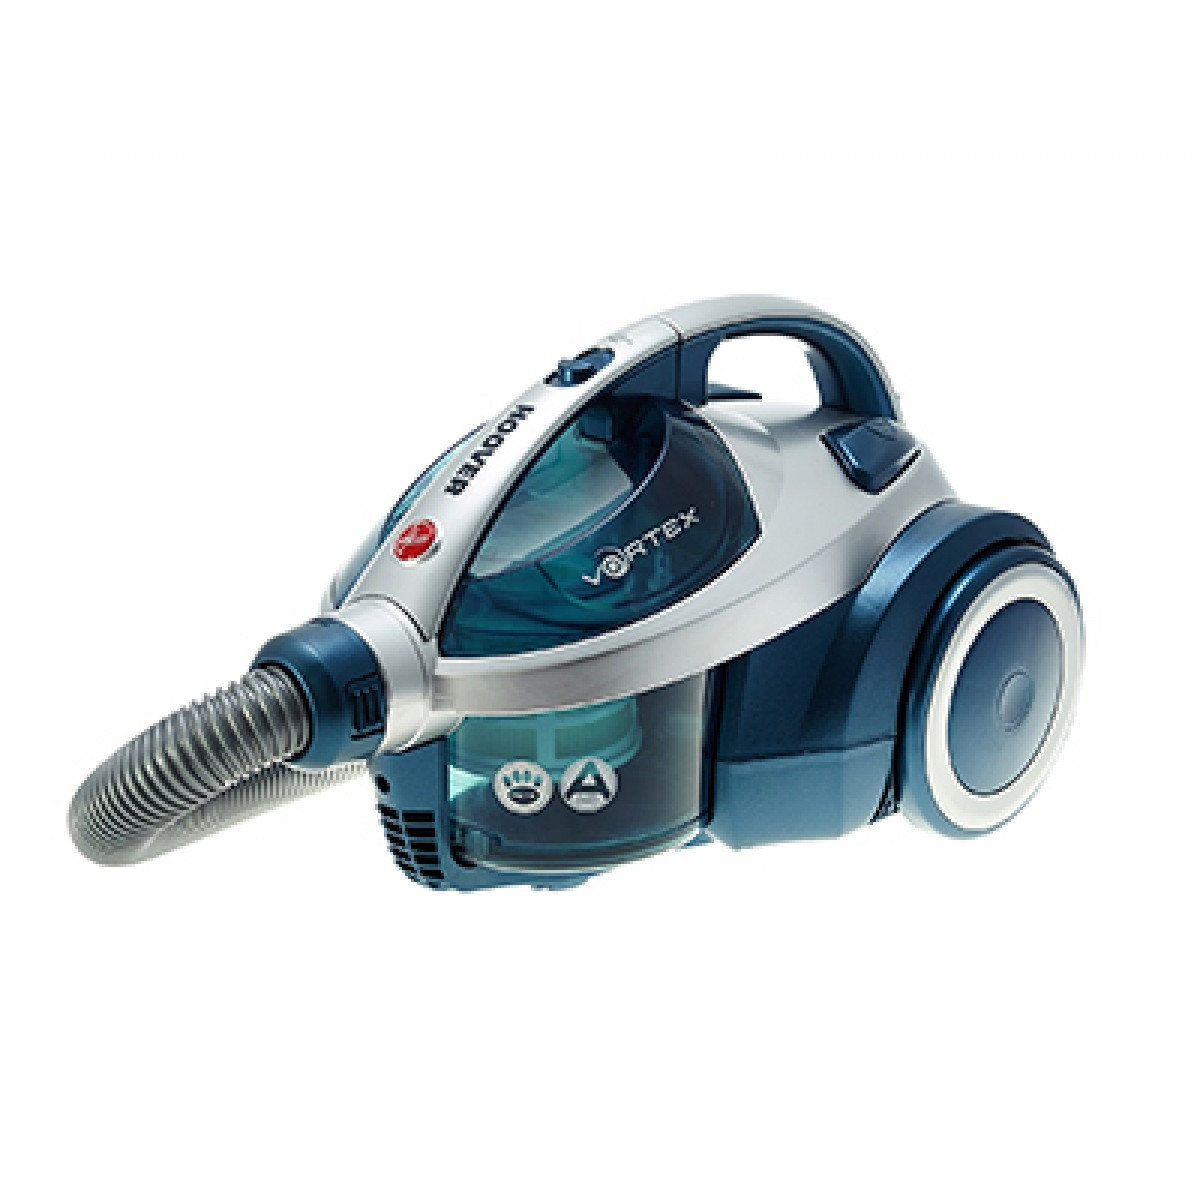 hoover eco pets turbo bagless vacuum cleaner review